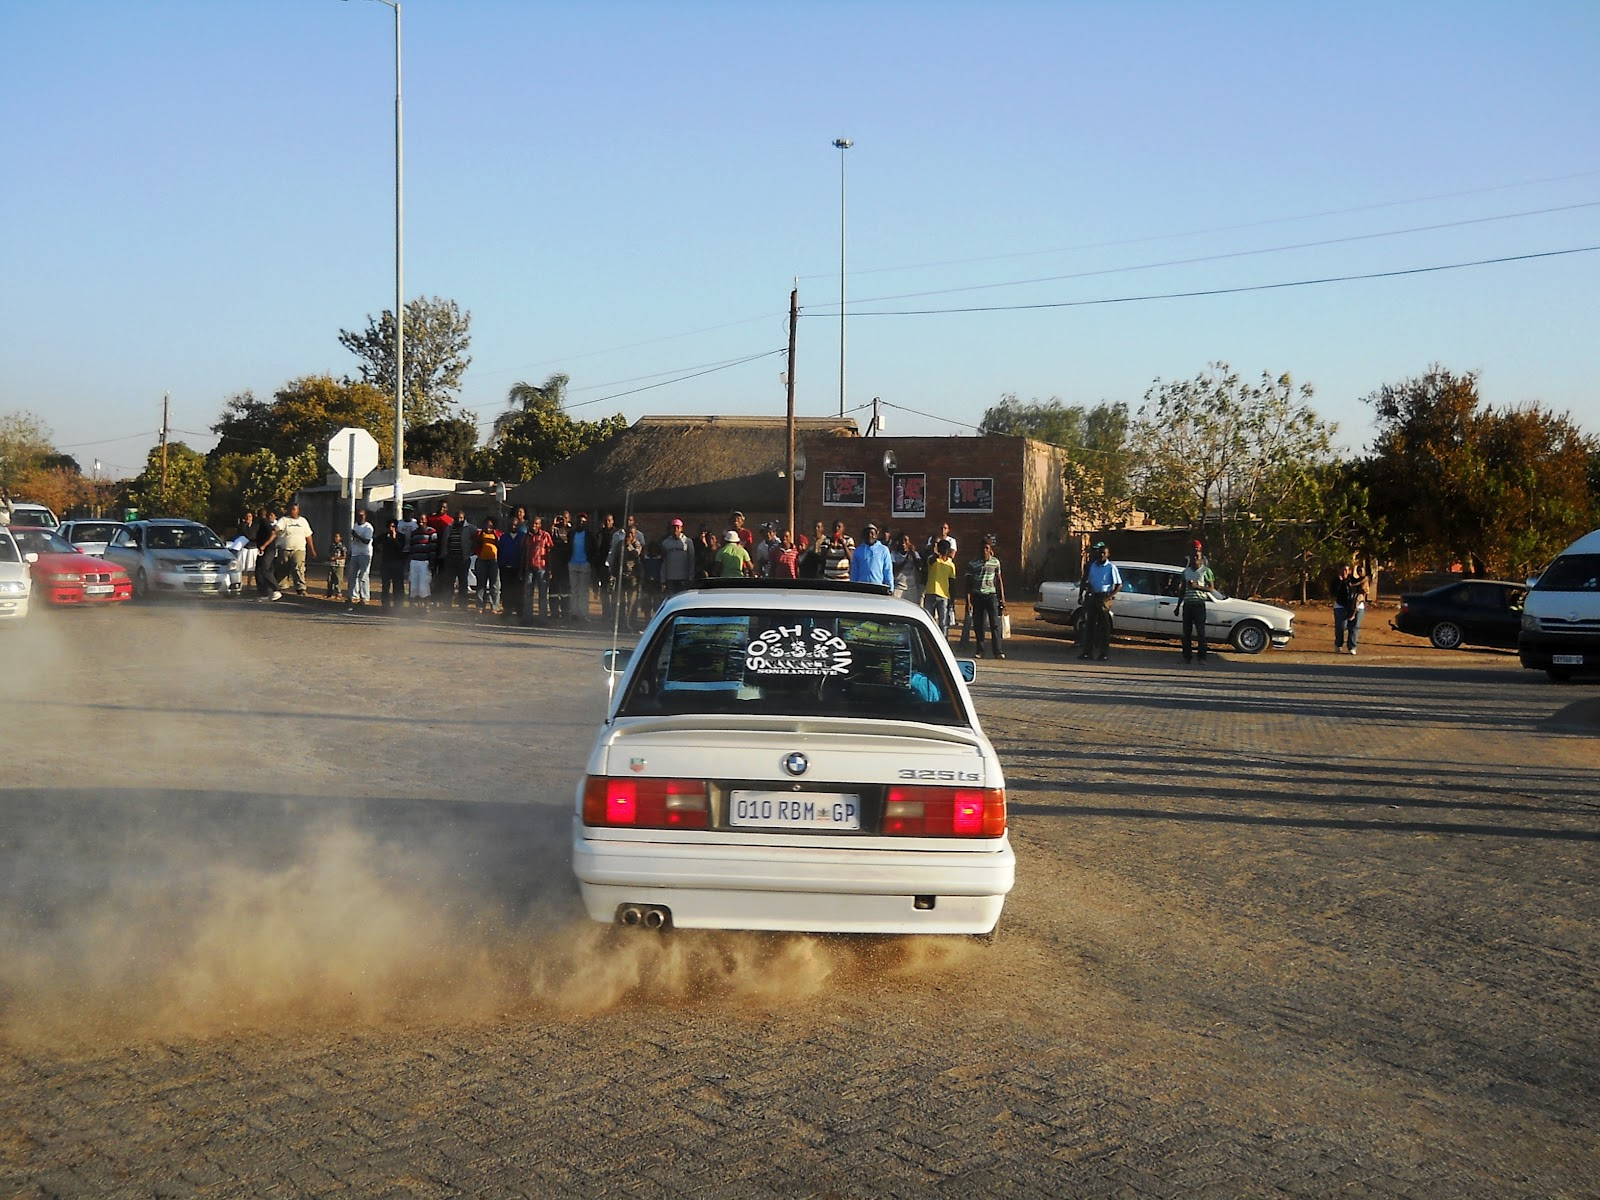 Nissan Columbus Ohio >> Gusheshe Spinning At Soweto | Autos Post